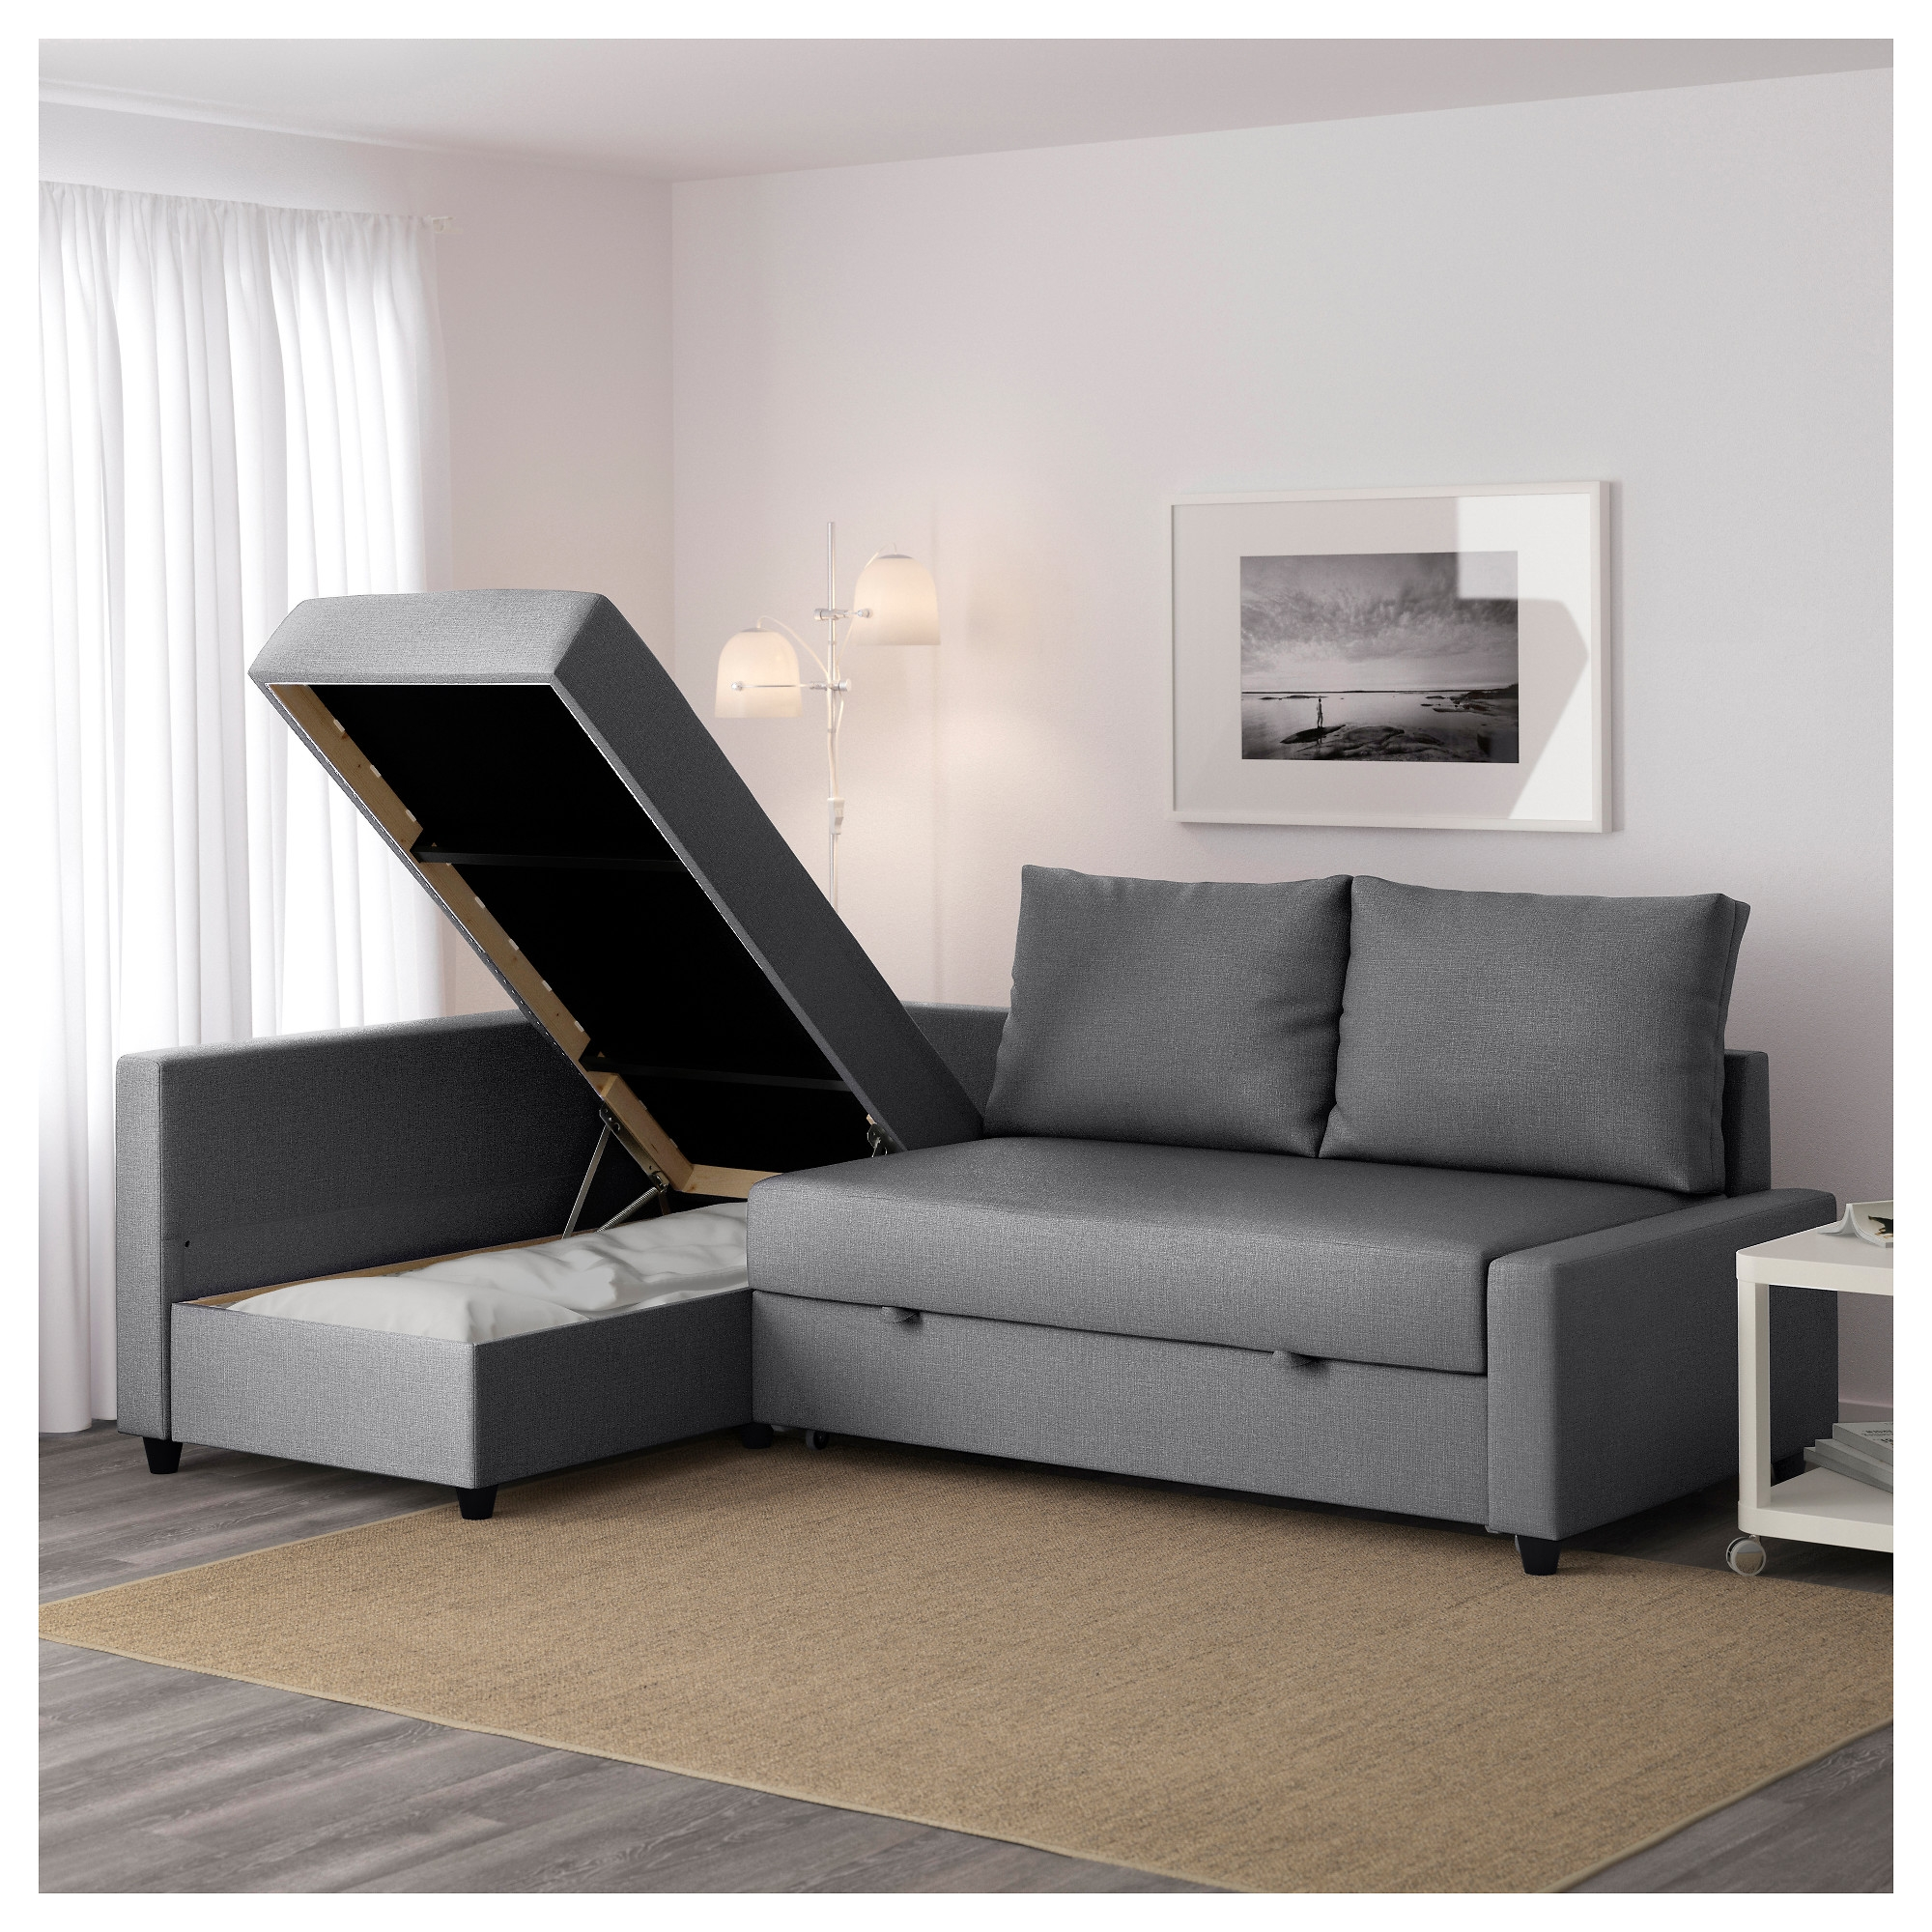 Friheten Corner Sofa Bed With Storage Skiftebo Dark Grey Ikea Pertaining To Corner Sofa Bed With Storage Ikea (Image 6 of 15)